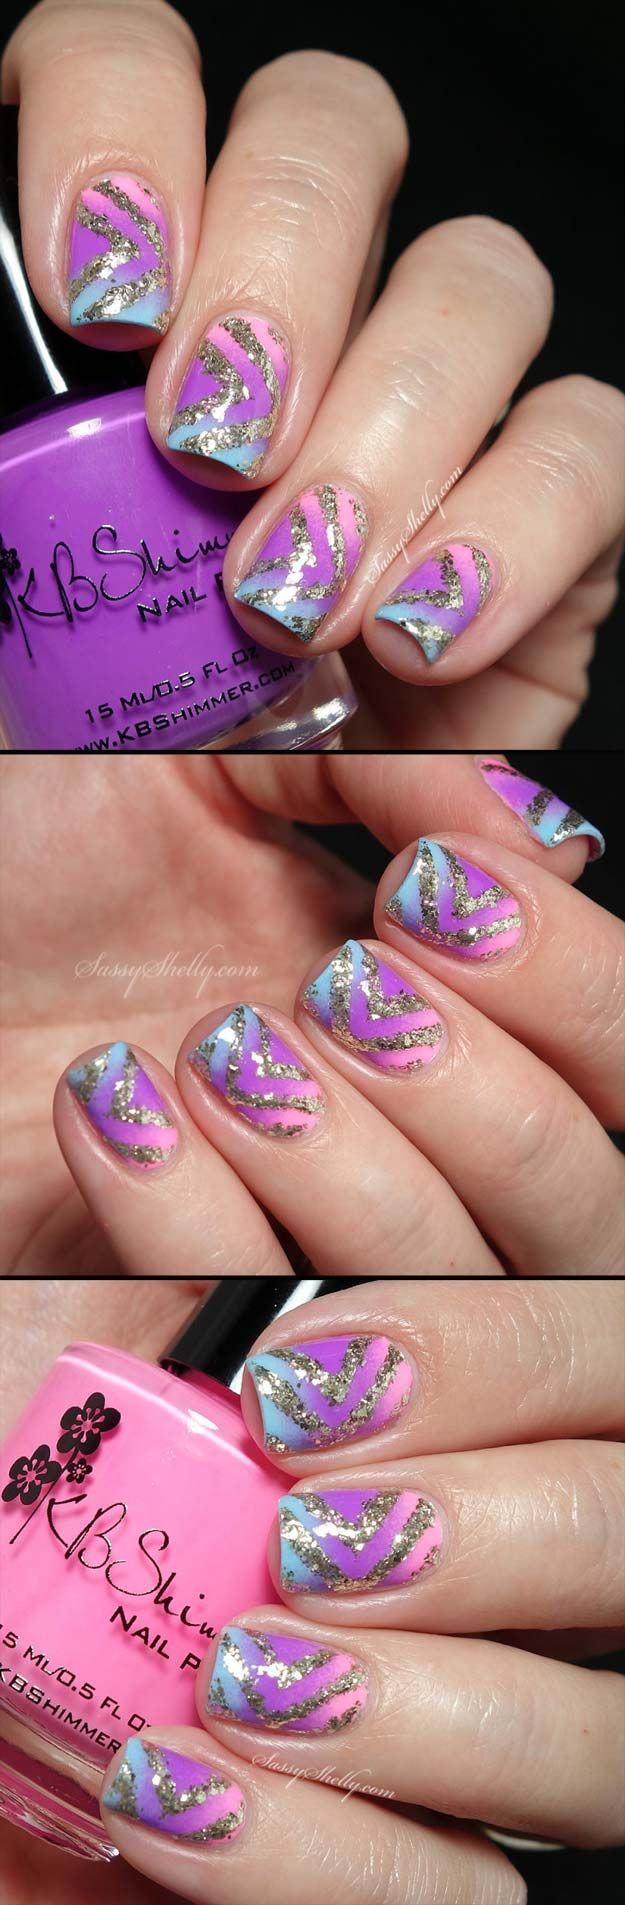 Nail Art Designs For Your Beach Vacation - Shimmer Summer Chevron - Give Yourself an Awesome New Style With One of These Manicures - Nailart with Palm Trees, Polka Dots, Sea Turtles and Designs For Just the Ring Finger - Blue China Glaze Designs and Toe Nail Art and Simple Glitter Pedicures - https://thegoddess.com/nail-art-designs-for-the-beach